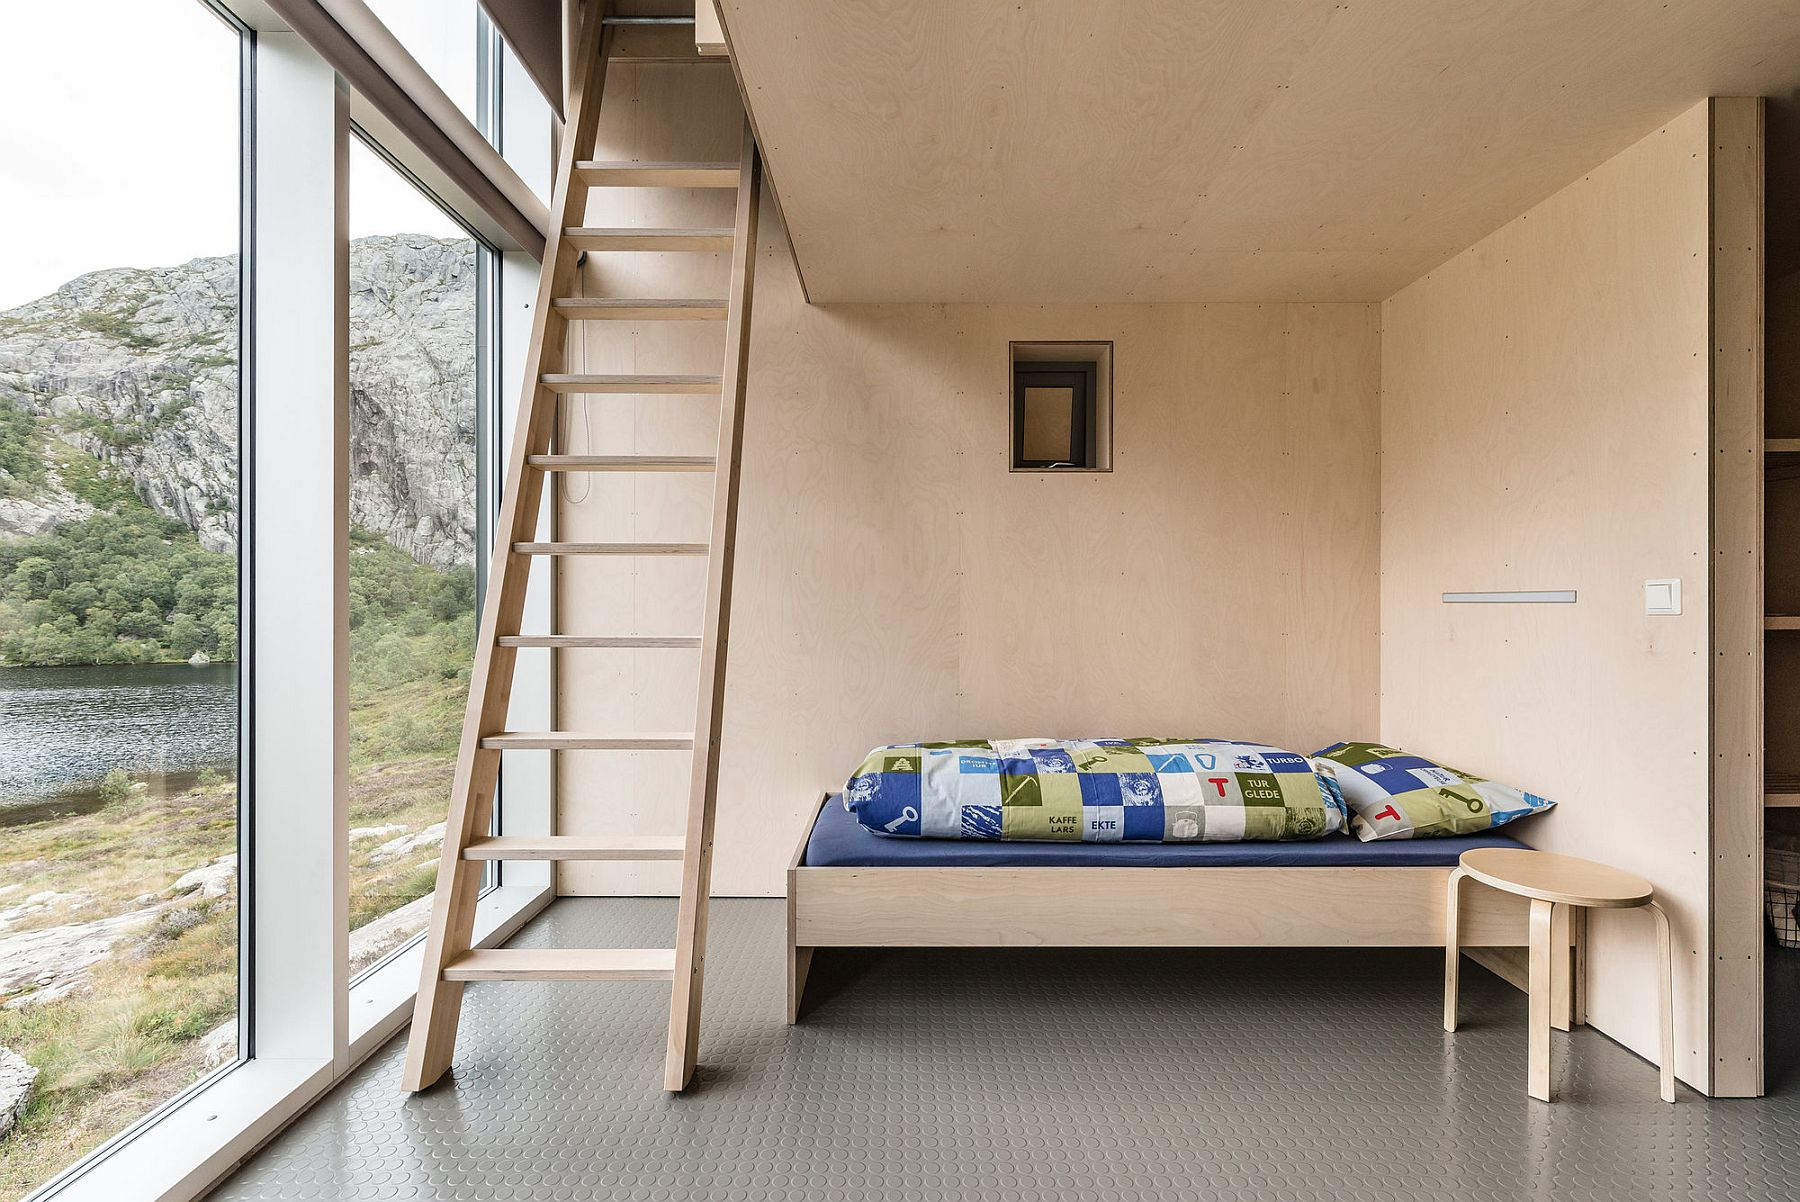 Bunk beds create perfect and multiple sleeping stations inside the mountain cabin